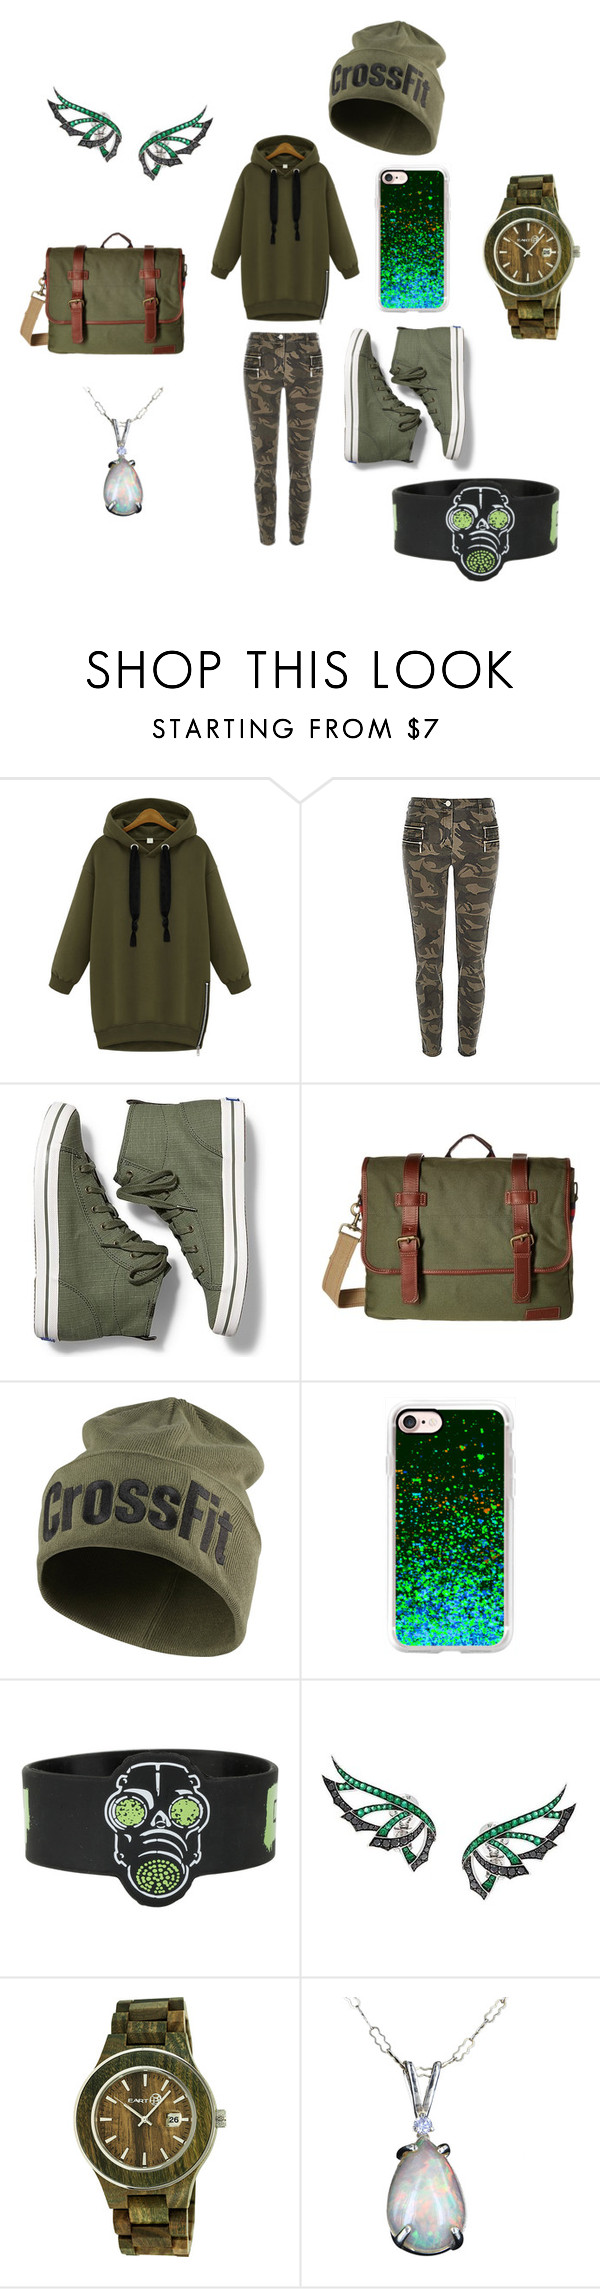 """T0X1C"" by annara-101 on Polyvore featuring Keds, Tommy Hilfiger, Reebok, Casetify, Stephen Webster and Earth"